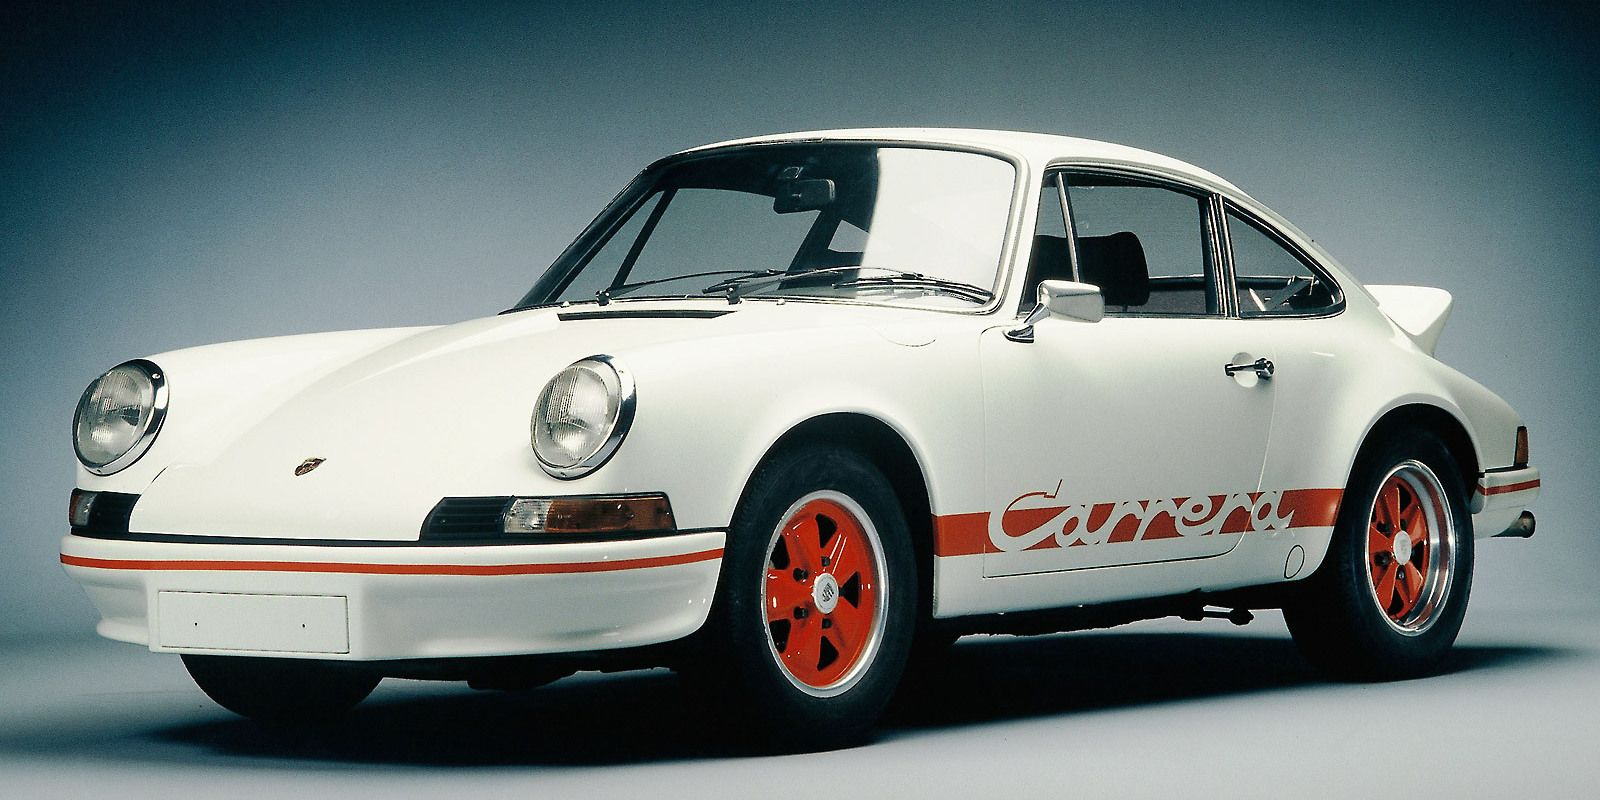 "<p>For the last 30 years, the 911 Carrera has been the most basic 911 you could buy, but in 1973, that word denoted something special. The <a href=""http://www.roadandtrack.com/car-culture/videos/a28861/seen-through-glass-porsche-911-gt3-carrera-rs/"" target=""_blank"">Carrera RS 2.7</a> was lighter, more powerful, and rarer than other 911s of the era, and are now considered the pinnacle of classic 911s.</p>"